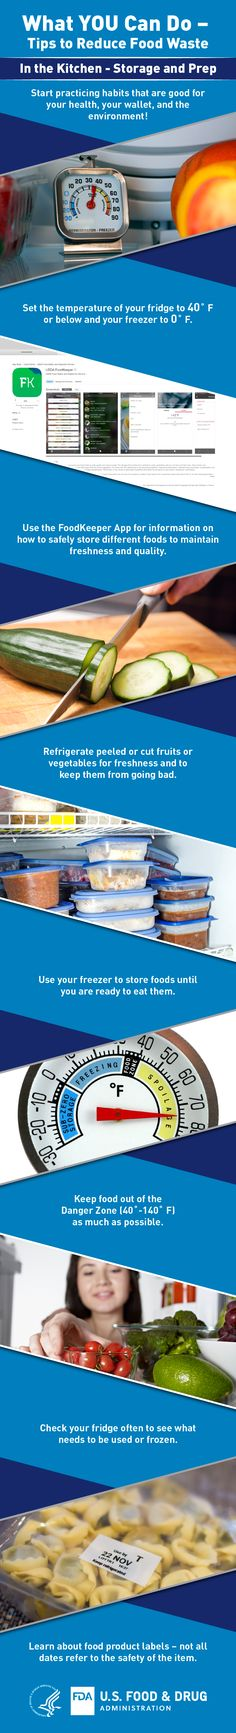 tips to reduce foodwaste in the kitchen through proper storage and preparation practice habits